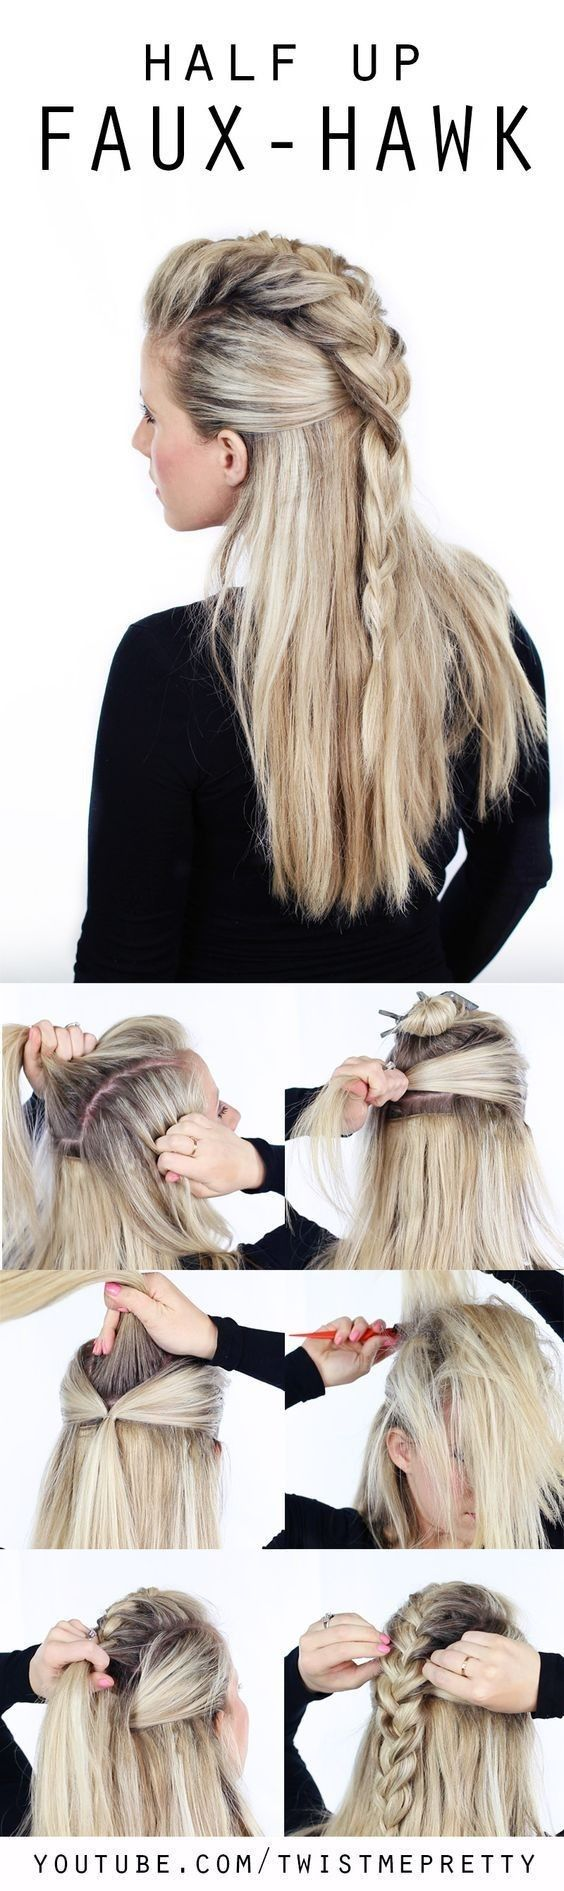 20 Attractive Braided Coiffure Concepts: Stylish Braids for Girls 2019